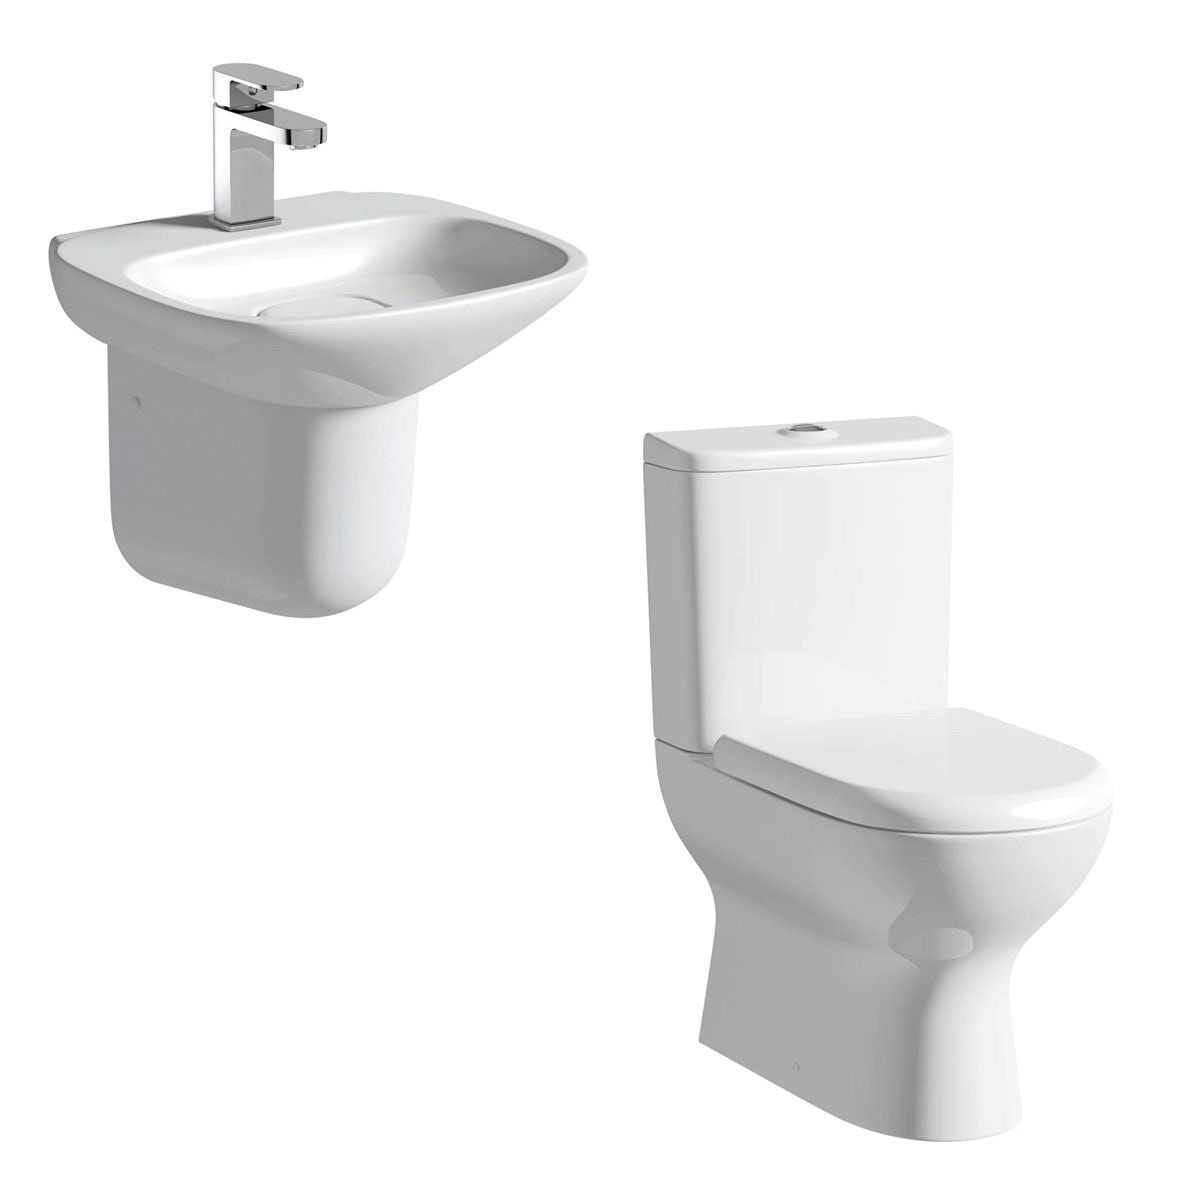 Mode Fairbanks close coupled toilet and semi pedestal basin suite